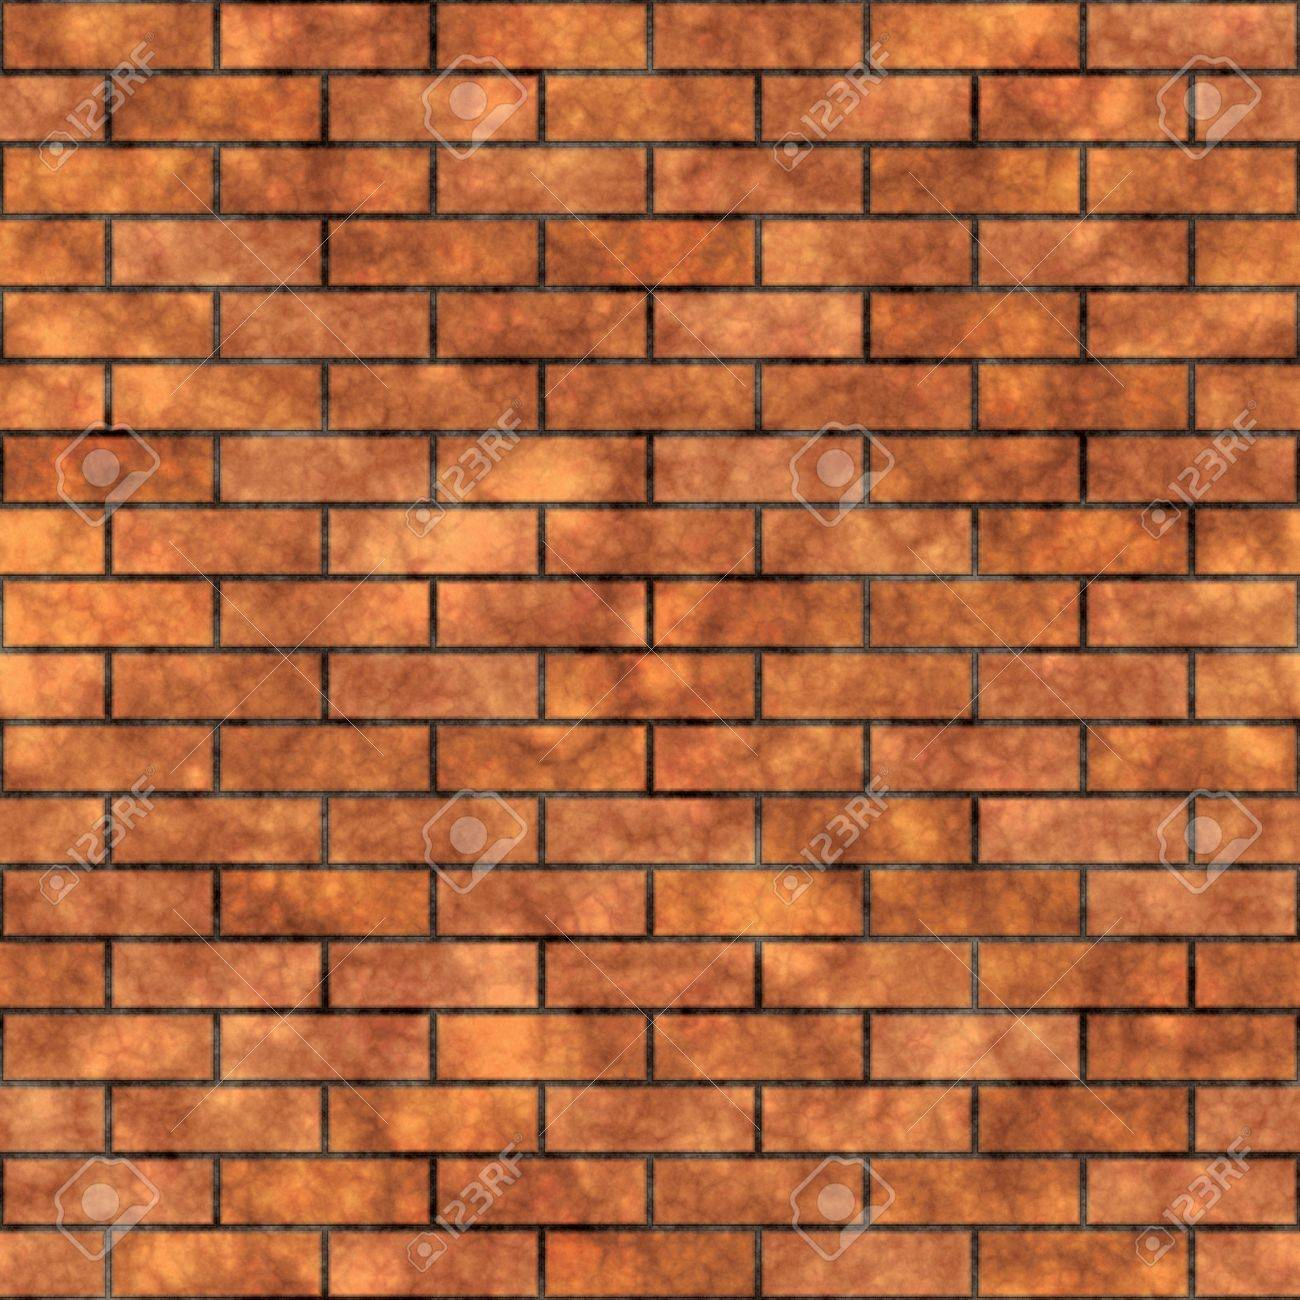 Seamless grungy brick wall texture in a burnt orange tone  Stock Photo    8204619. Seamless Grungy Brick Wall Texture In A Burnt Orange Tone  Stock